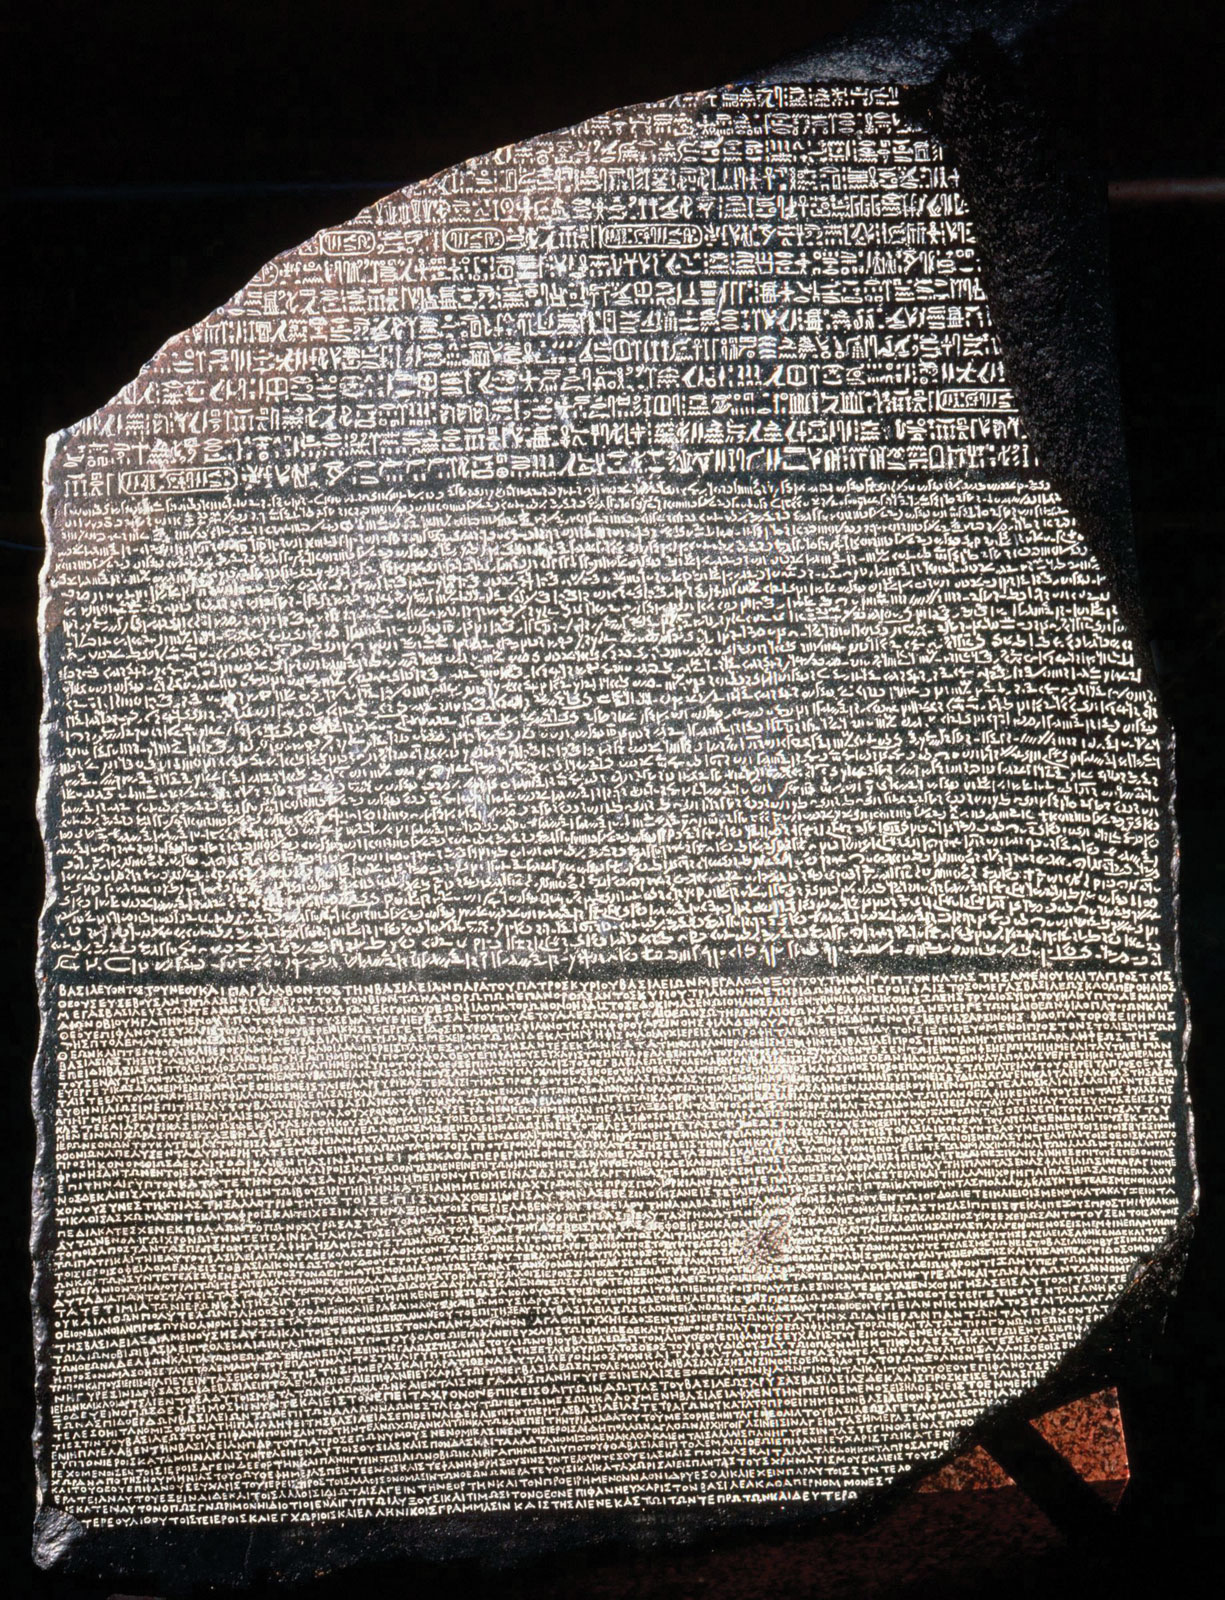 The Rosetta Stone basalt slab from Fort Saint-Julien Egypt 196 BCE in the British Museum London